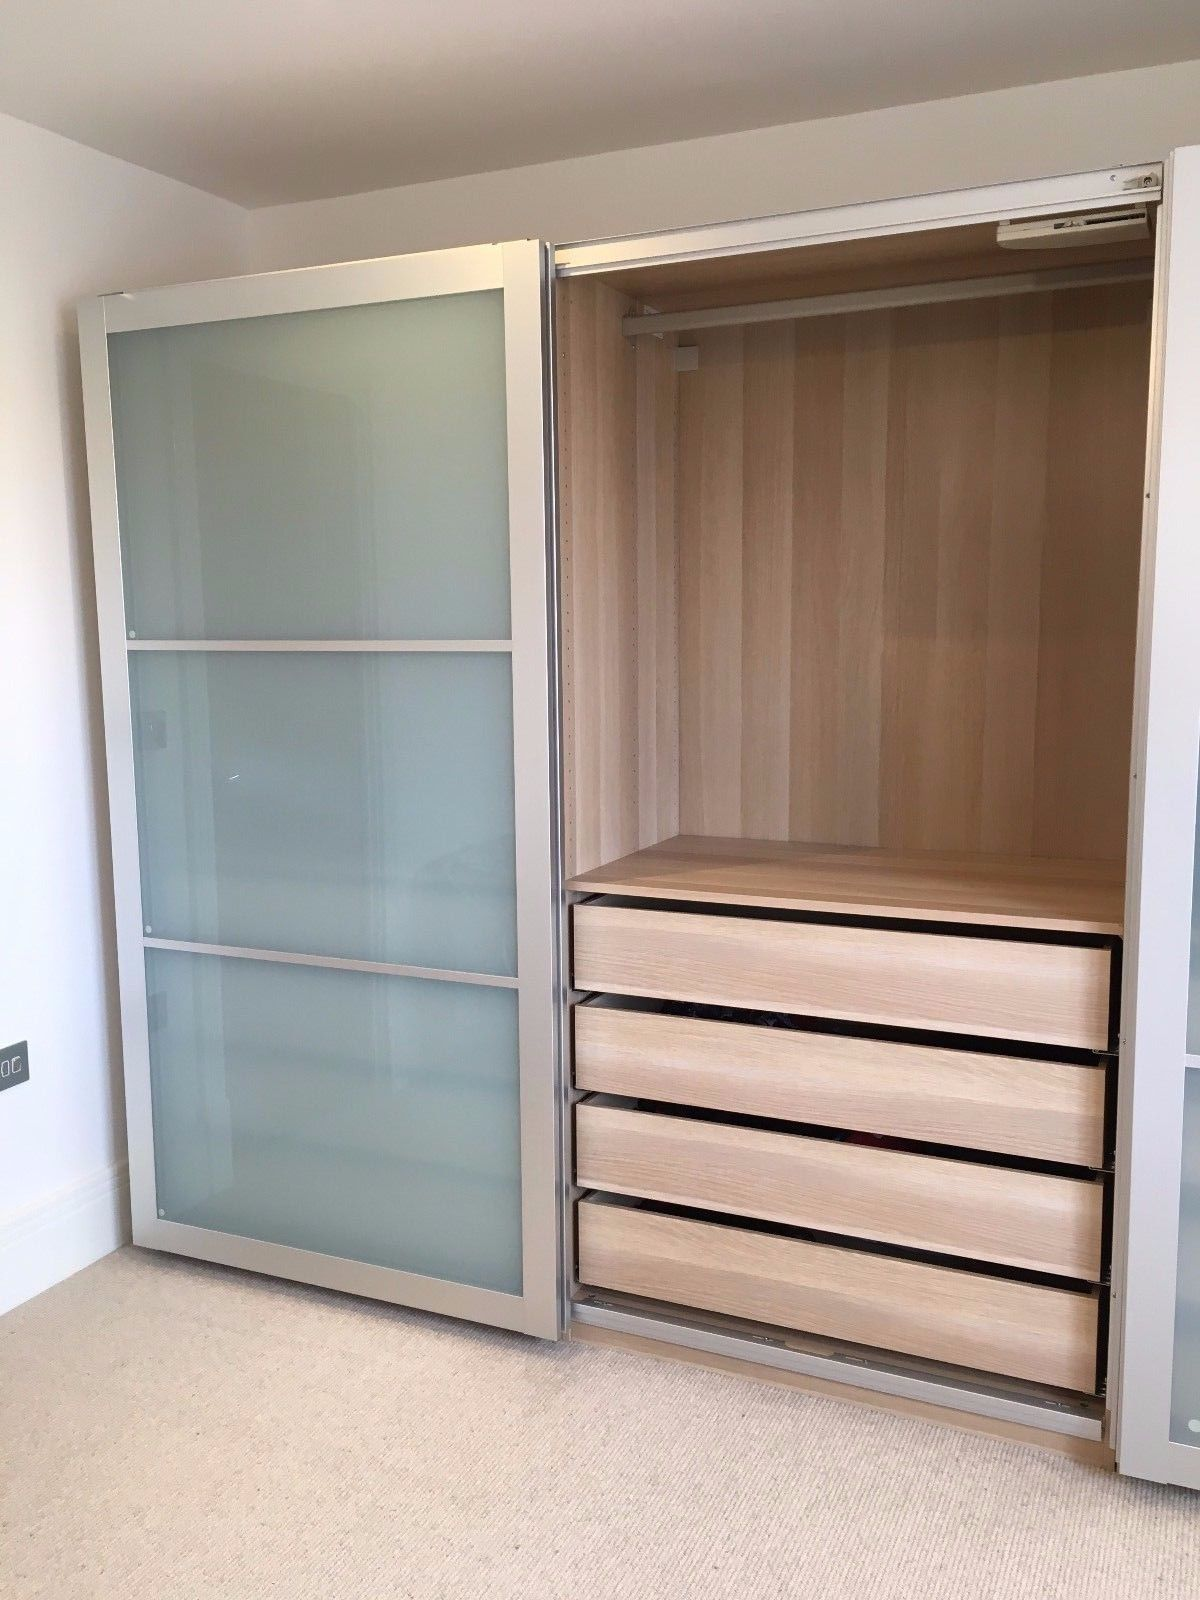 ikea-pax-wardrobe-200cm-wide-in-white-stained-_57